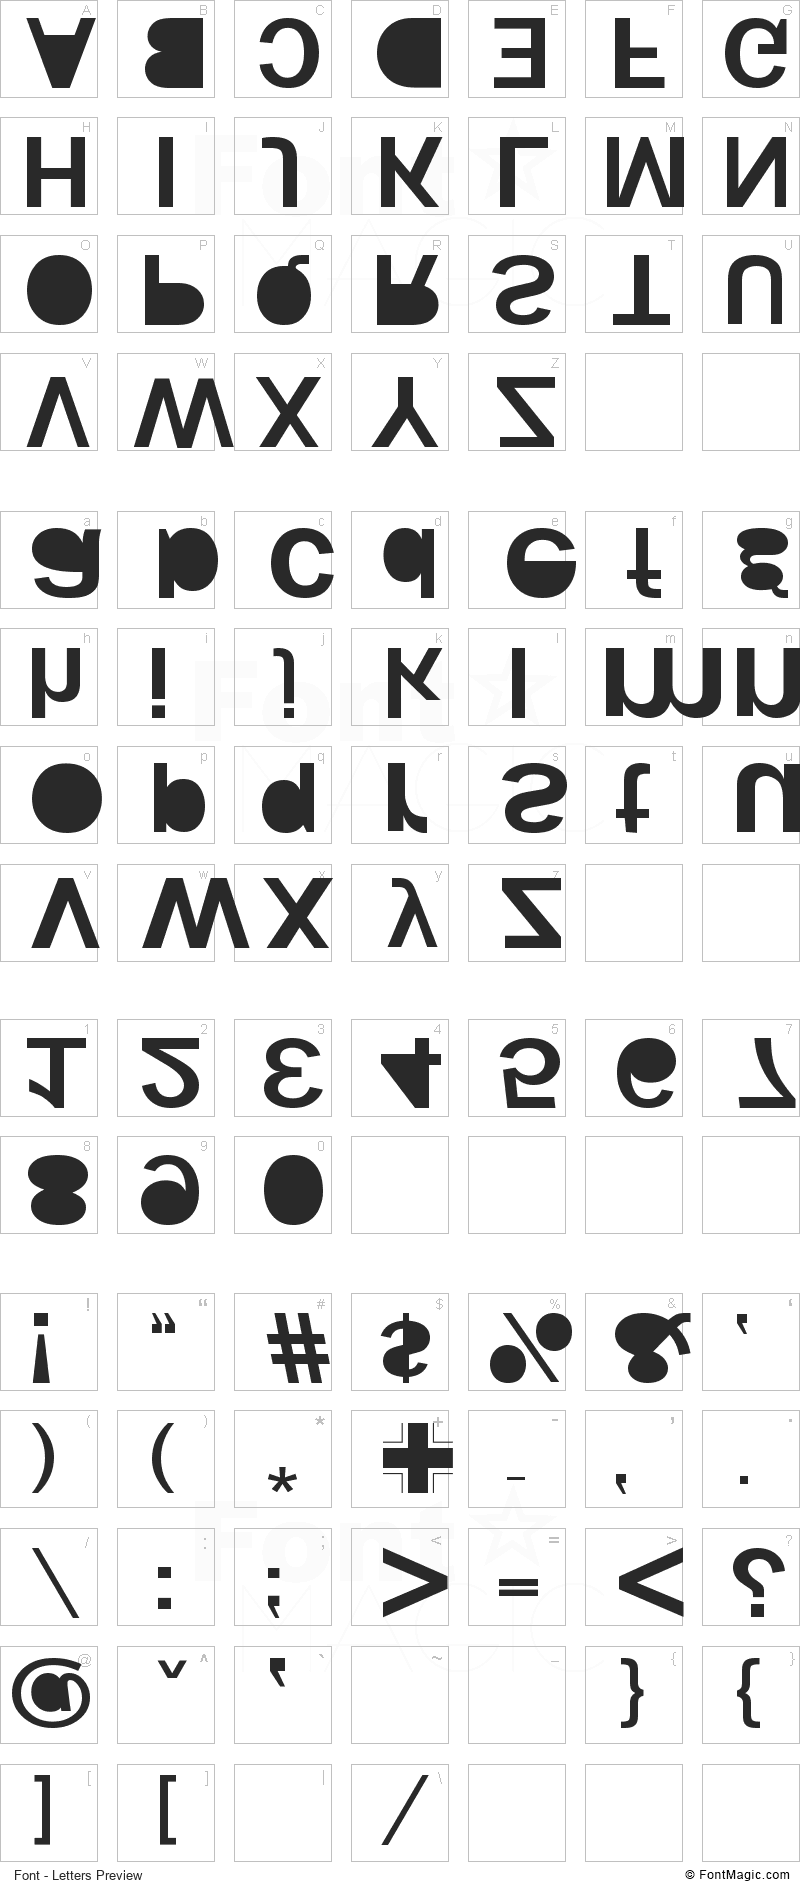 Woodcutter Kaos Font - All Latters Preview Chart